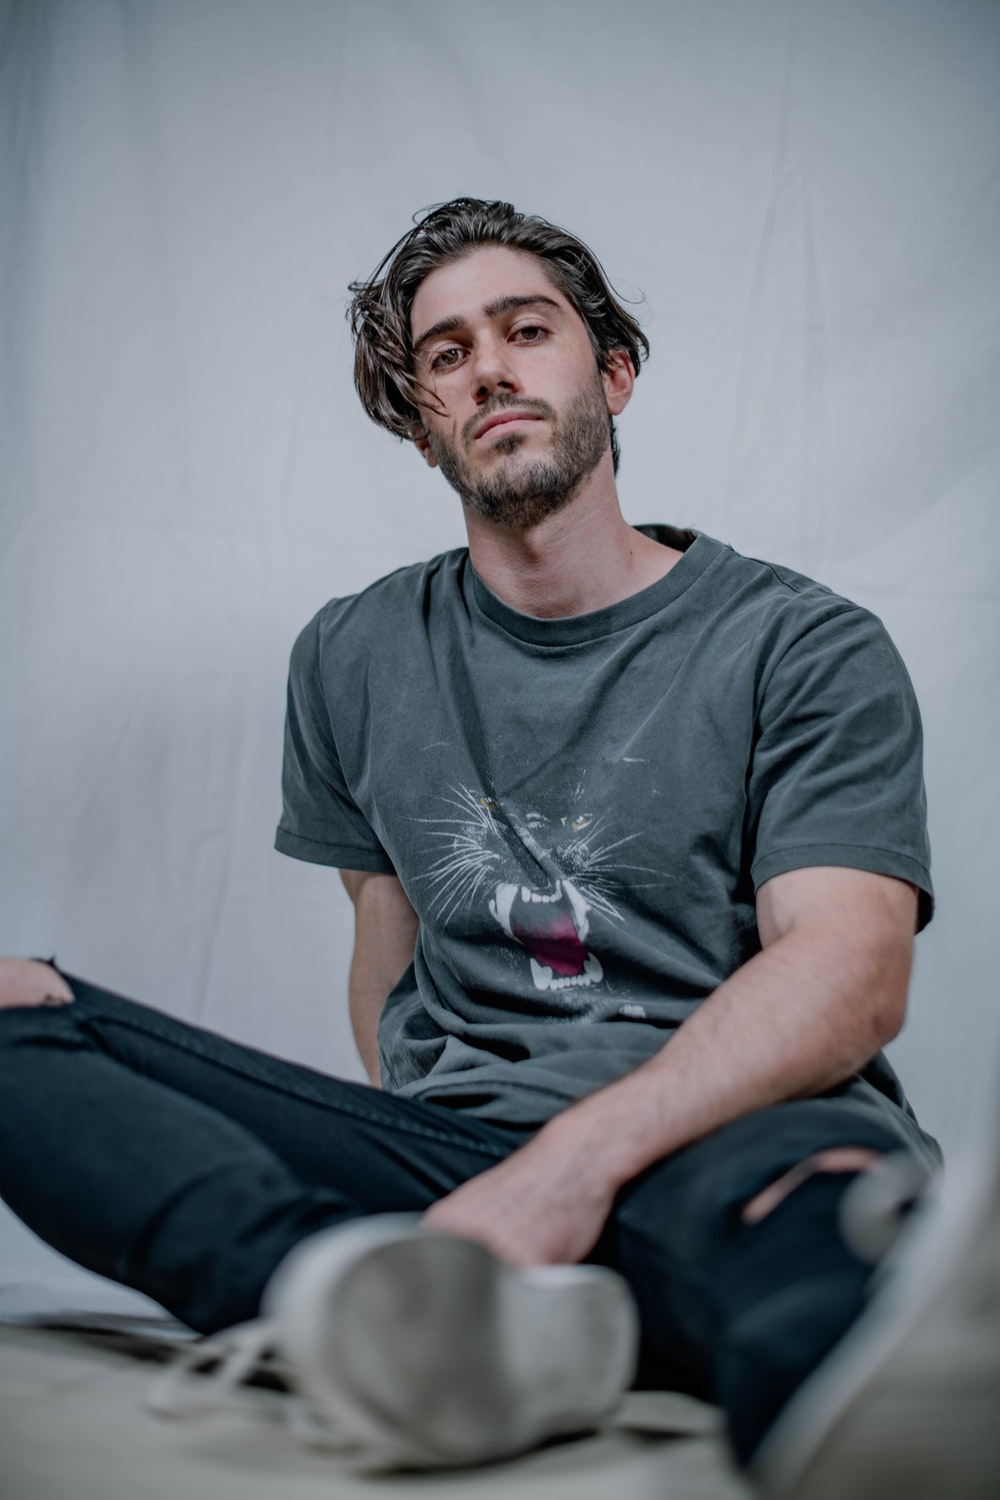 man in gray crew neck t-shirt sitting on bed